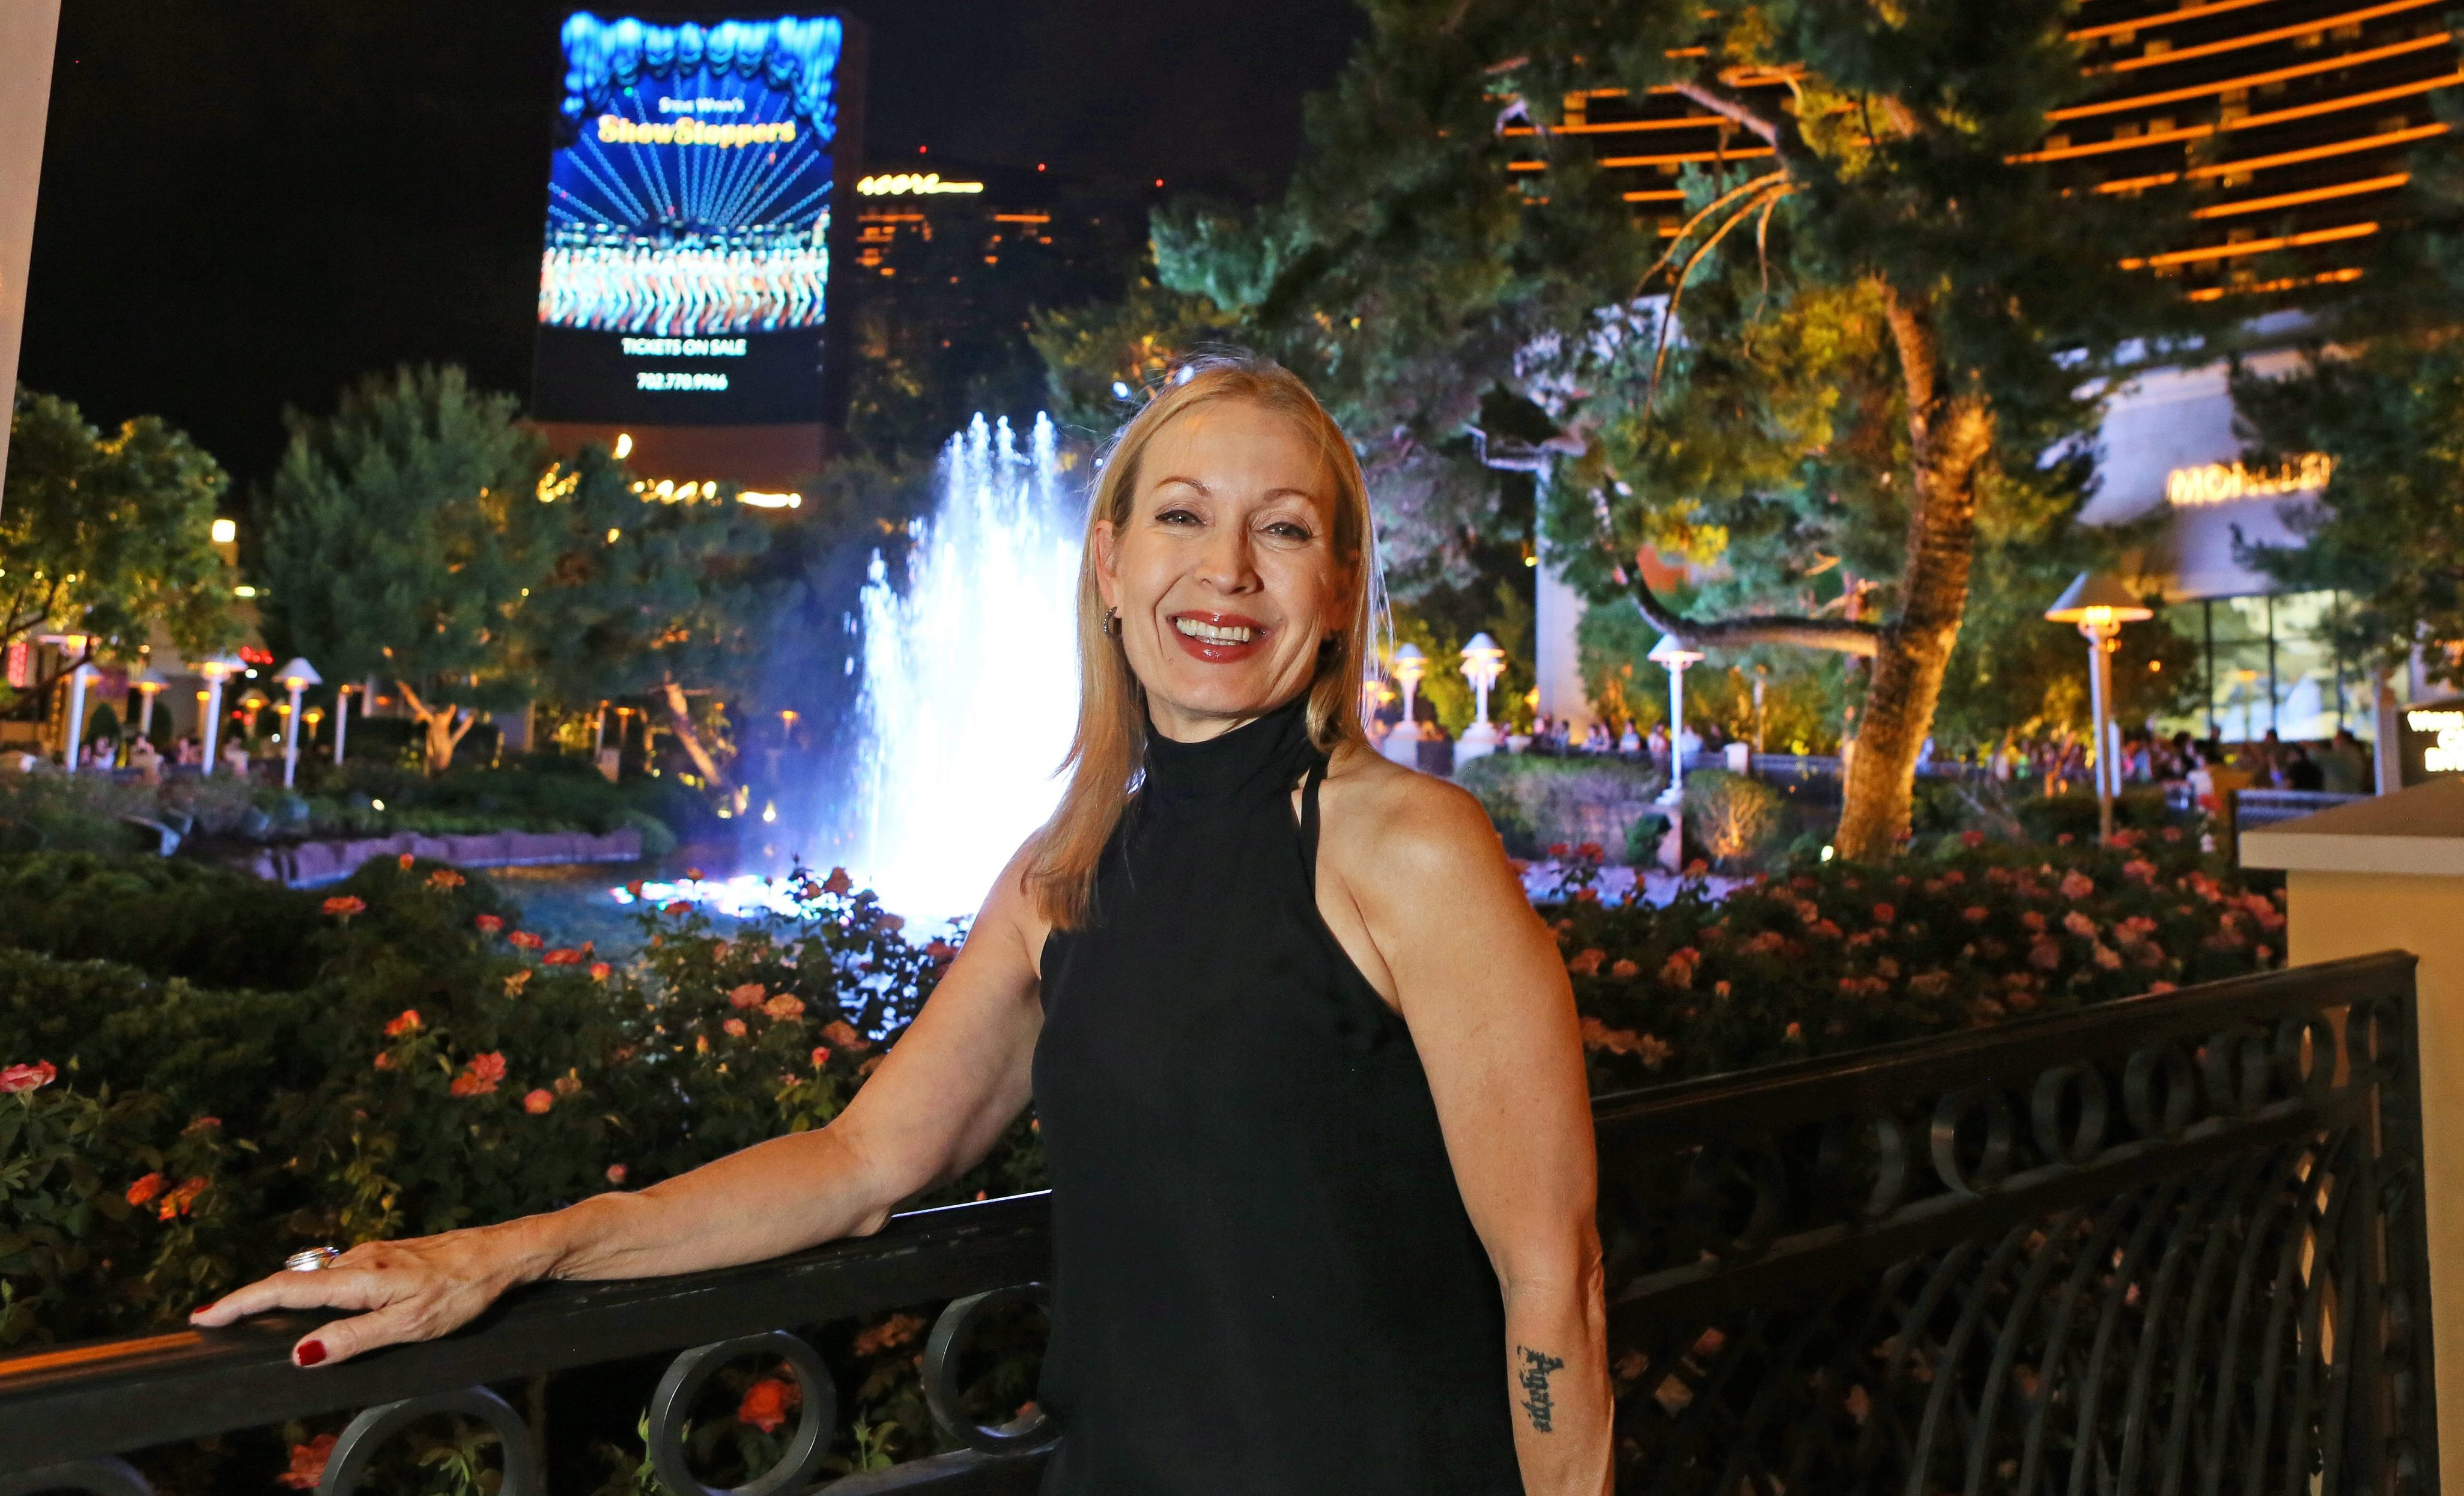 Buffalo native Marguerite Derricks is photographed outside the Wynn hotel-casino in Las Vegas, where she is the choreographer for Wynn's musical production 'ShowStoppers.' (Ronda Churchill/Special to The News)